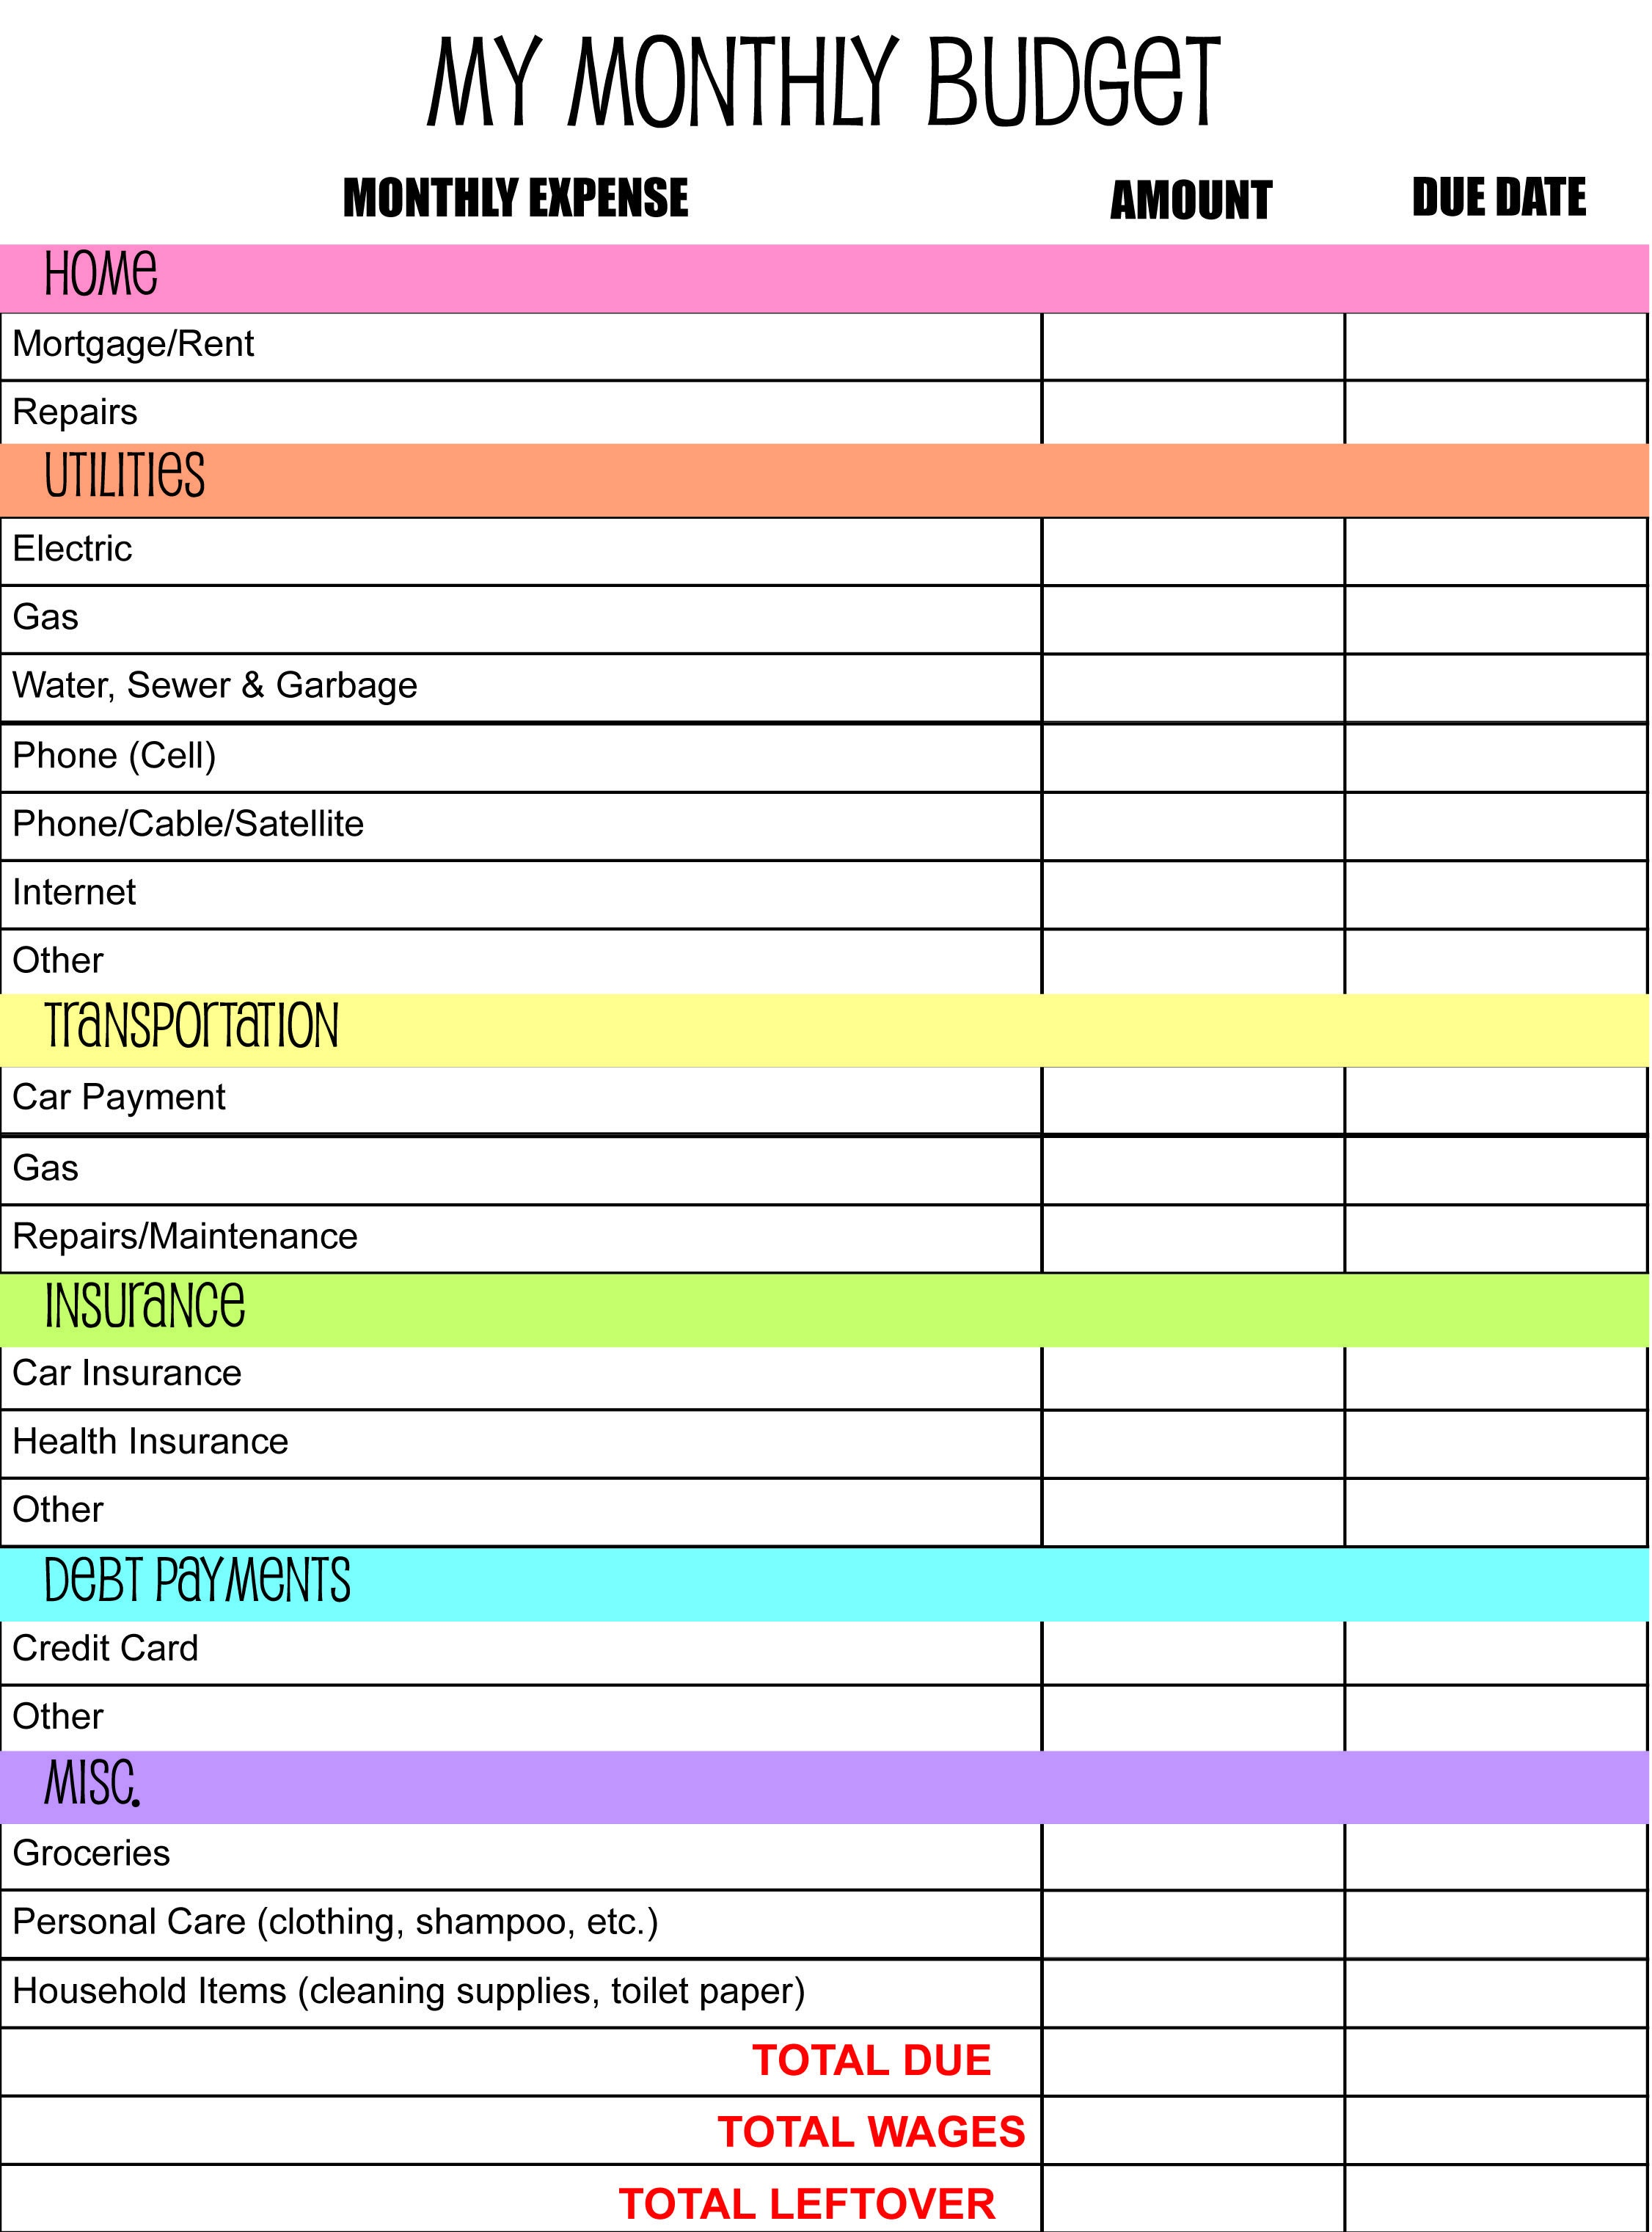 Monthly Budget Planner I Made @ Anderson Publications | All On My - Budgeting Charts Free Printable